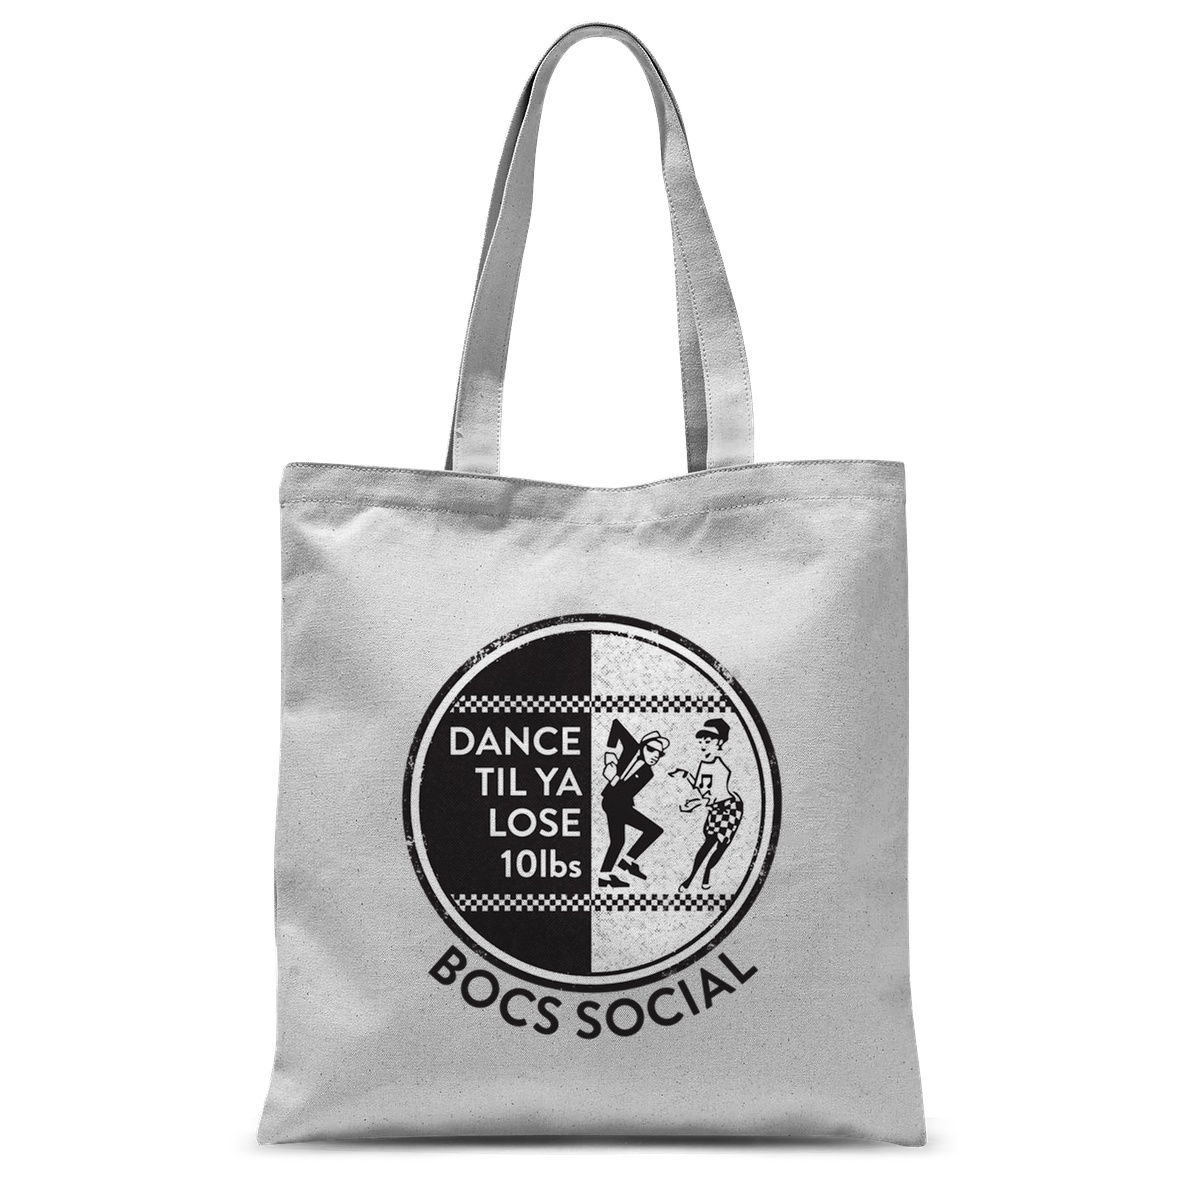 B&W Dance Tote Bag – 15″x16.5″